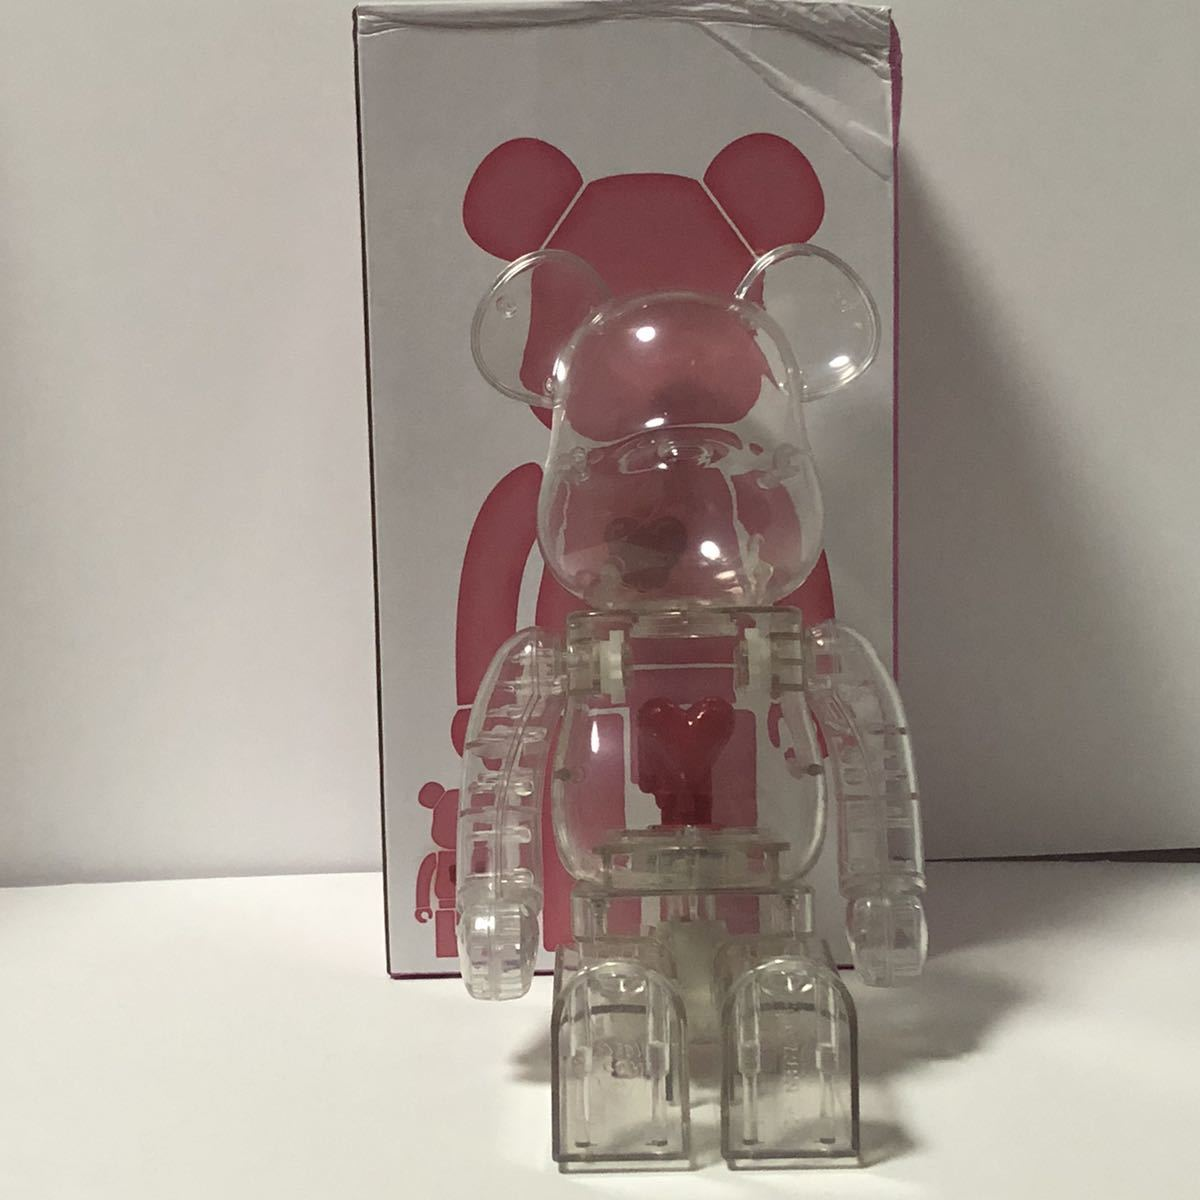 Bearbrick x Emotionally Unavailable Red Heart 400% Clear クリア 透明 ベアブリック BE@RBRICK _画像3